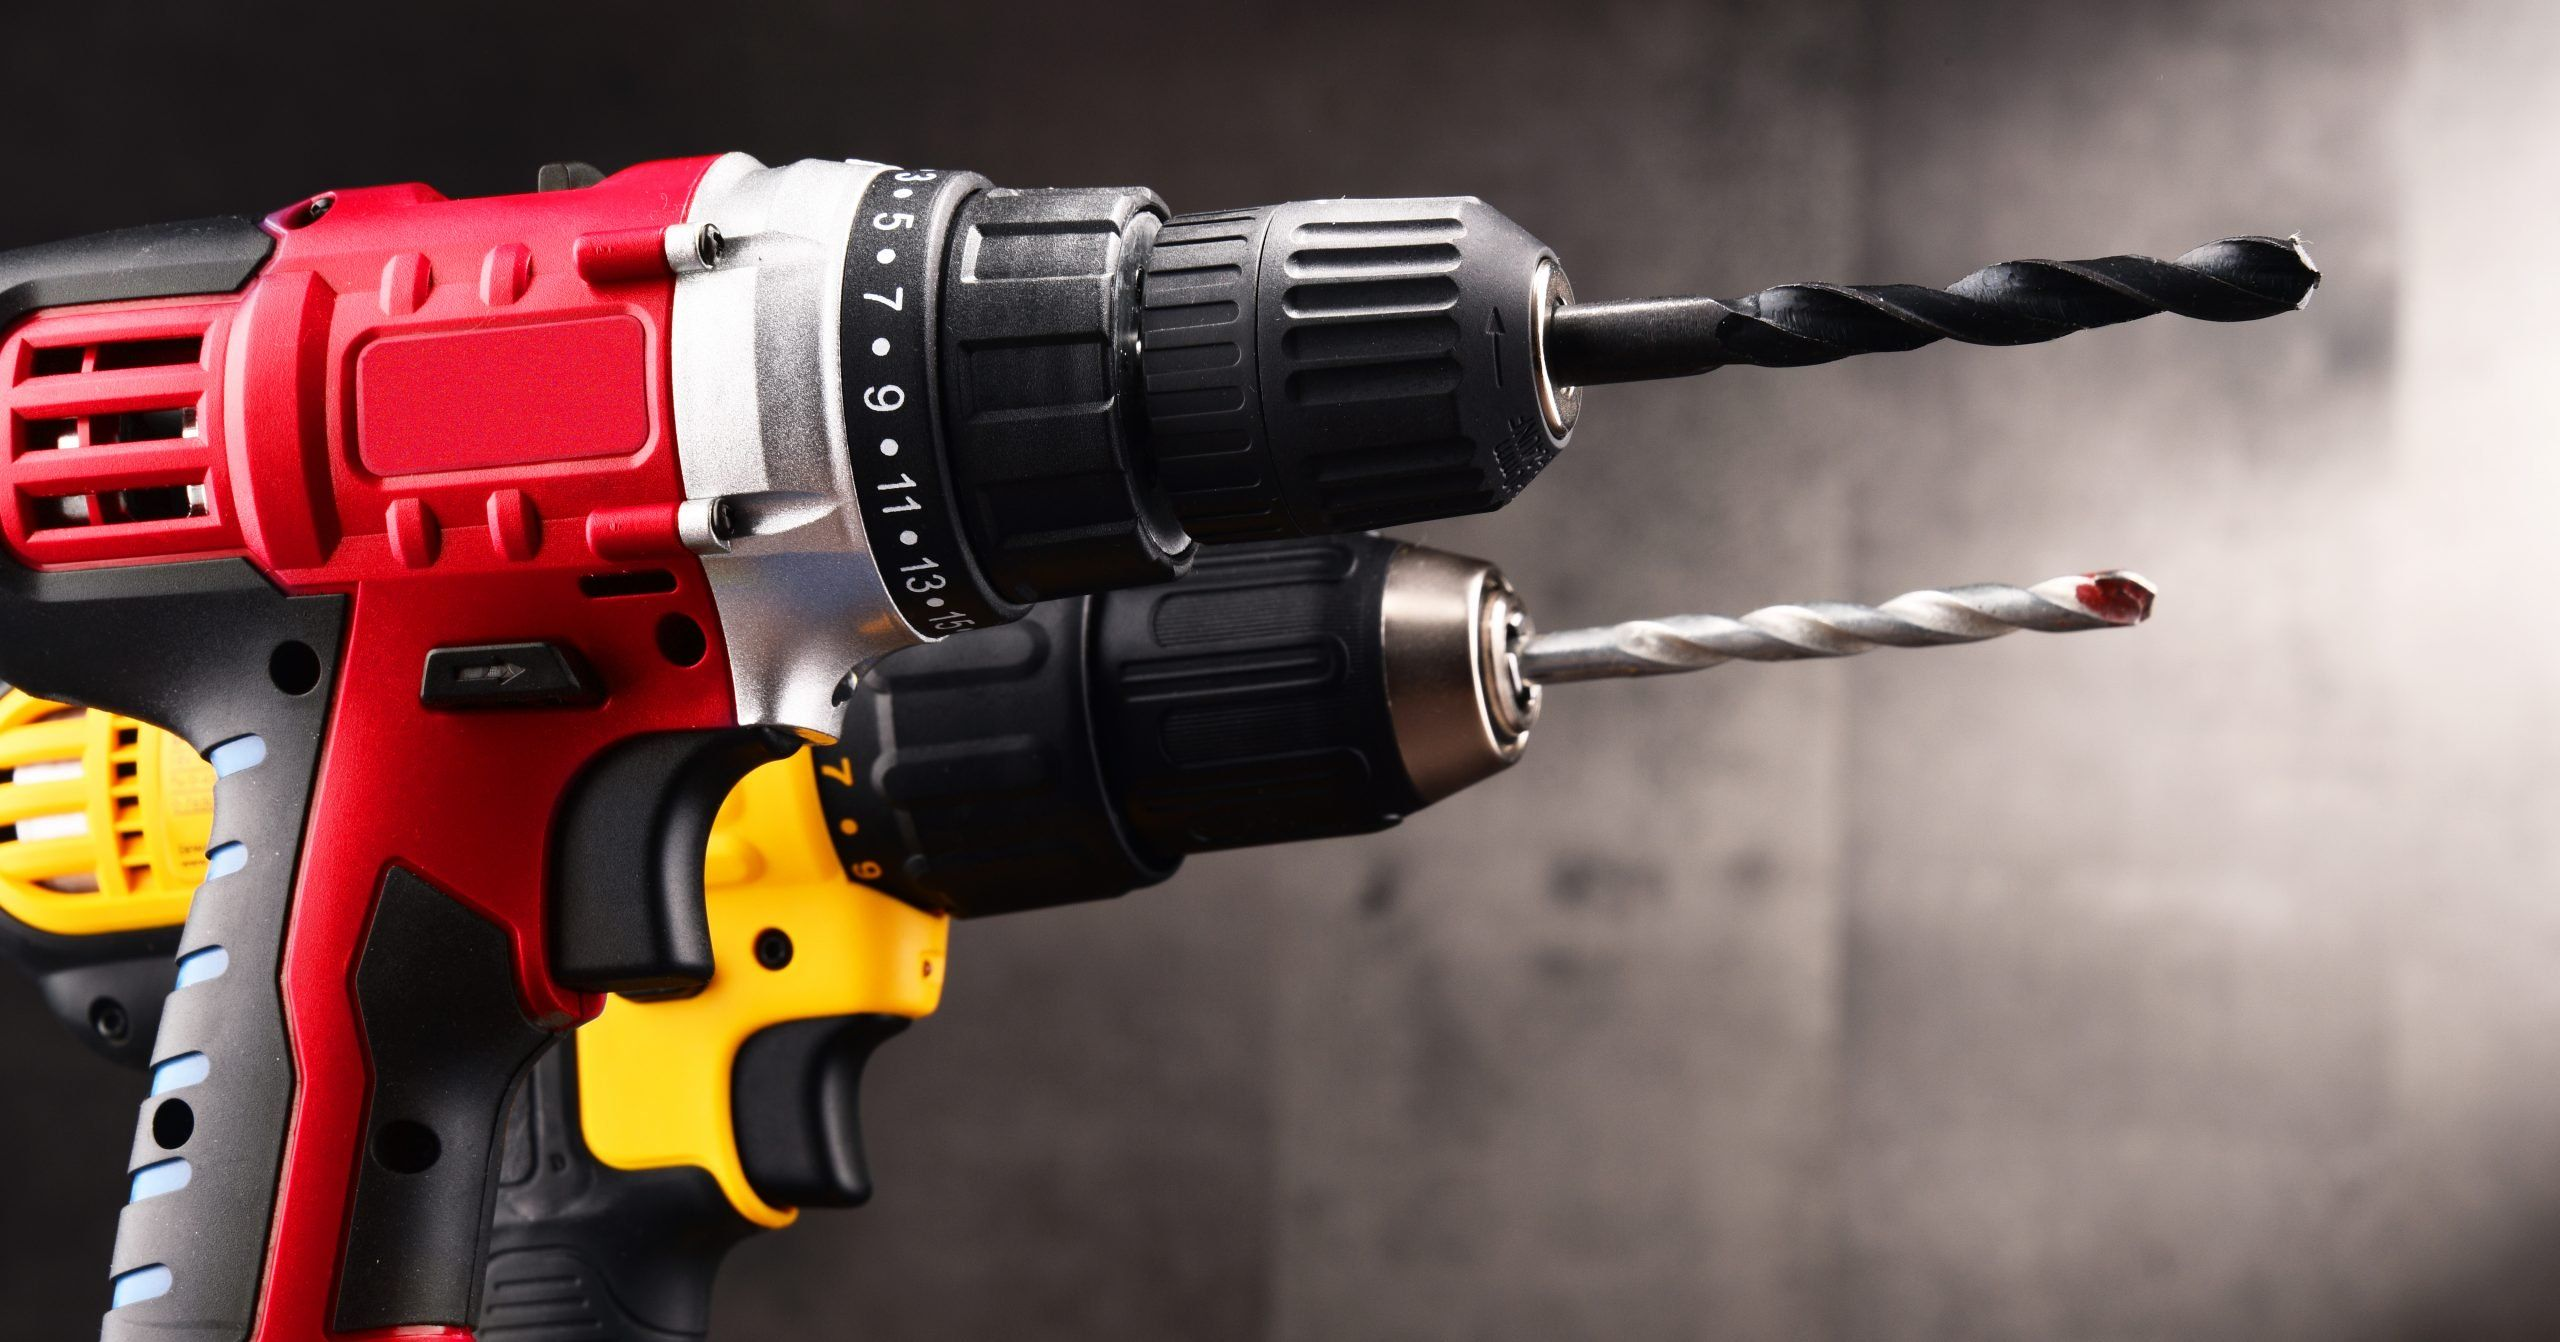 Top Cordless Drill Drivers For 2020 In 2020 Drill Cordless Drill Tile Installation